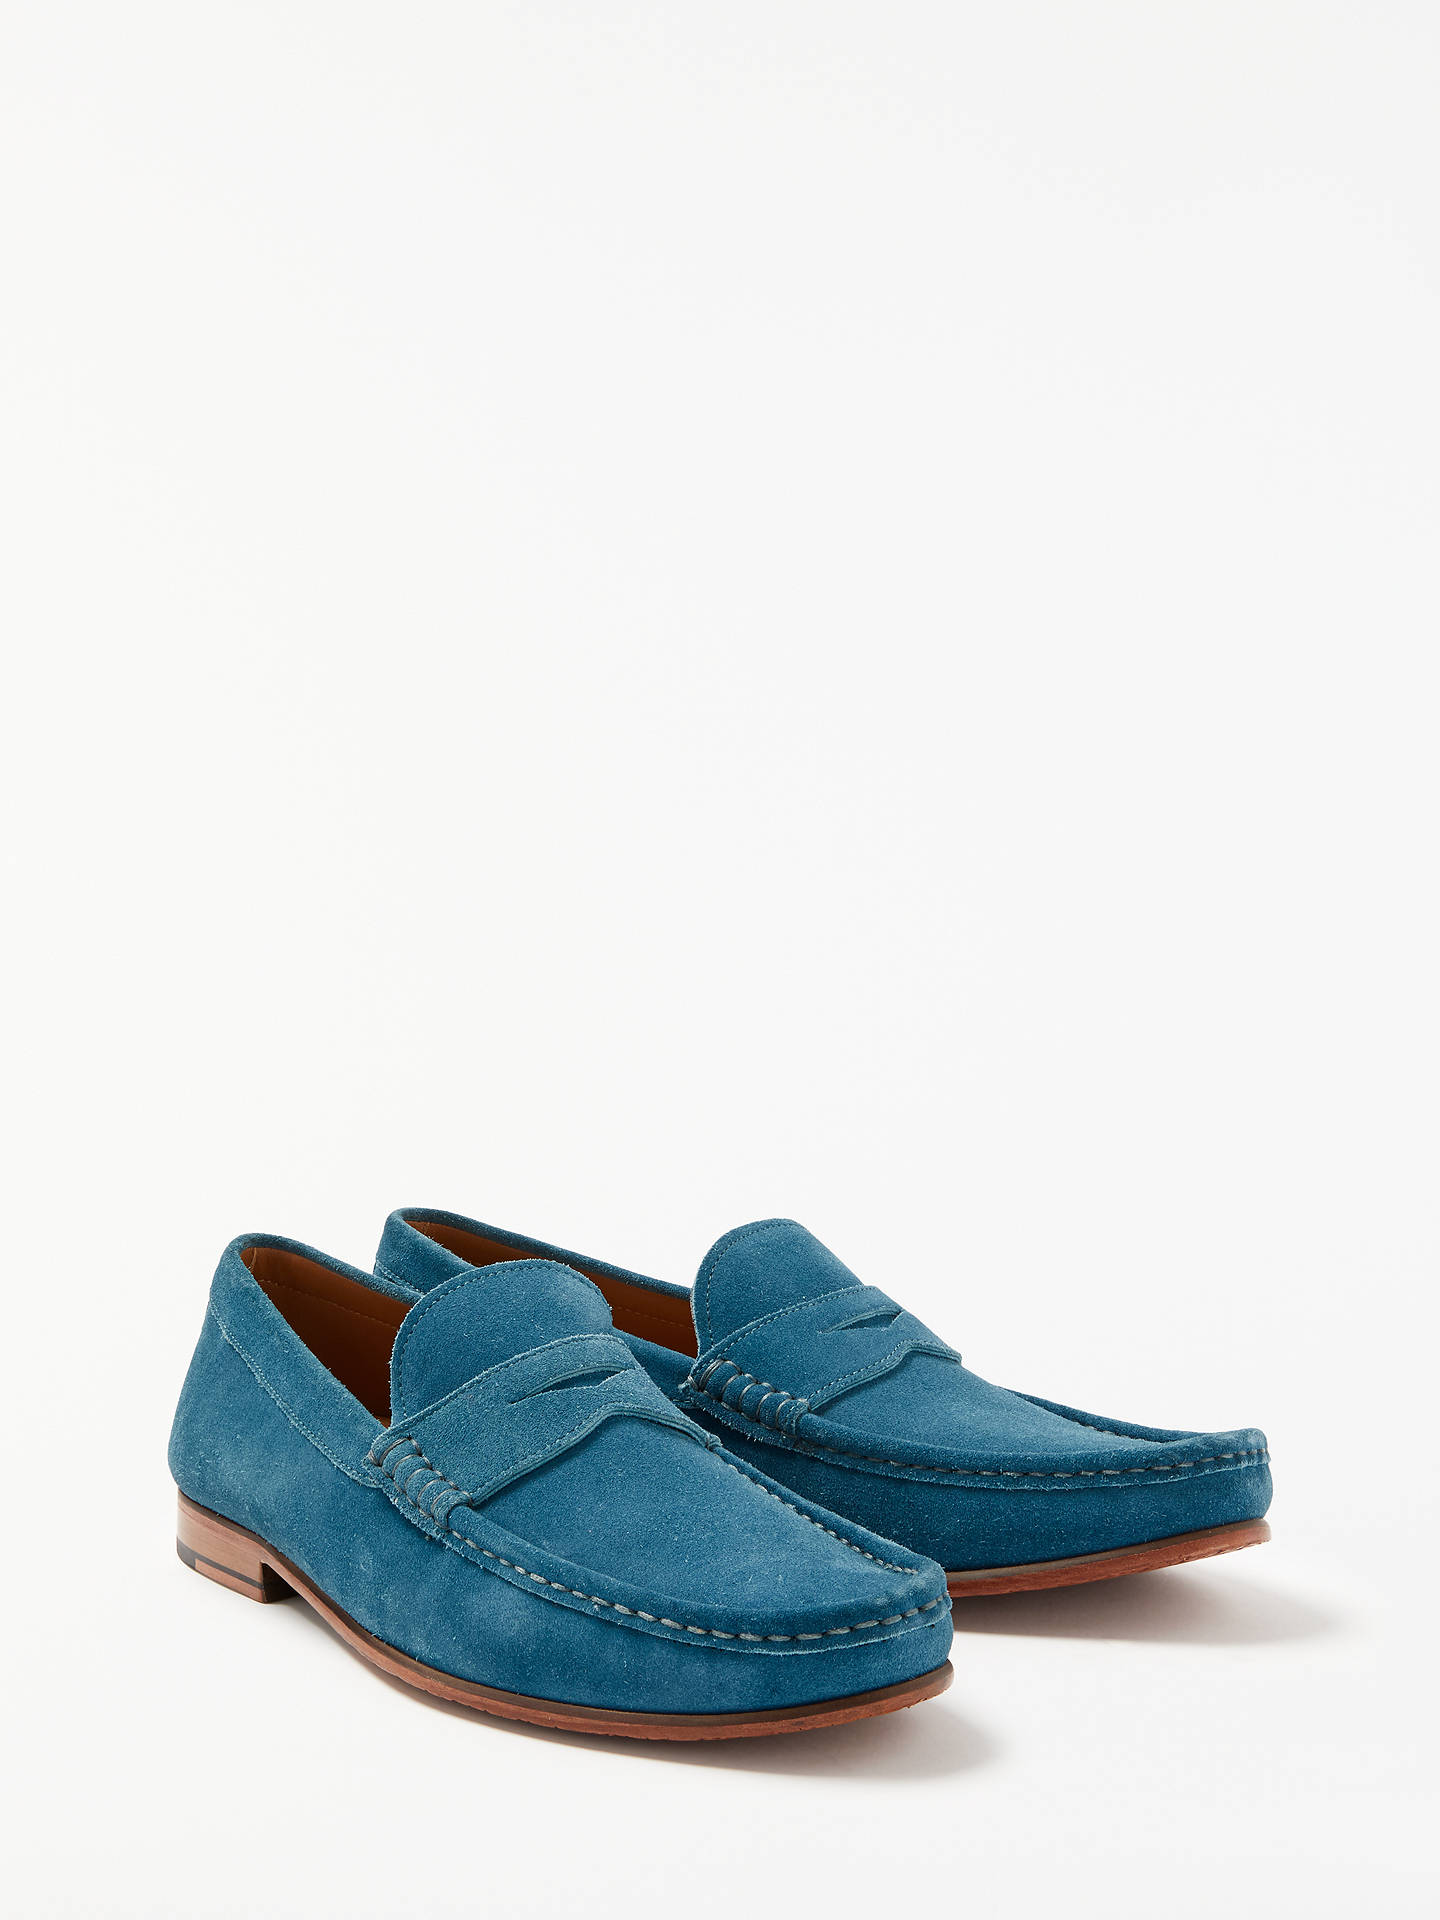 BuyJohn Lewis & Partners Louis Suede Penny Loafers, Turquoise, 9 Online at johnlewis.com